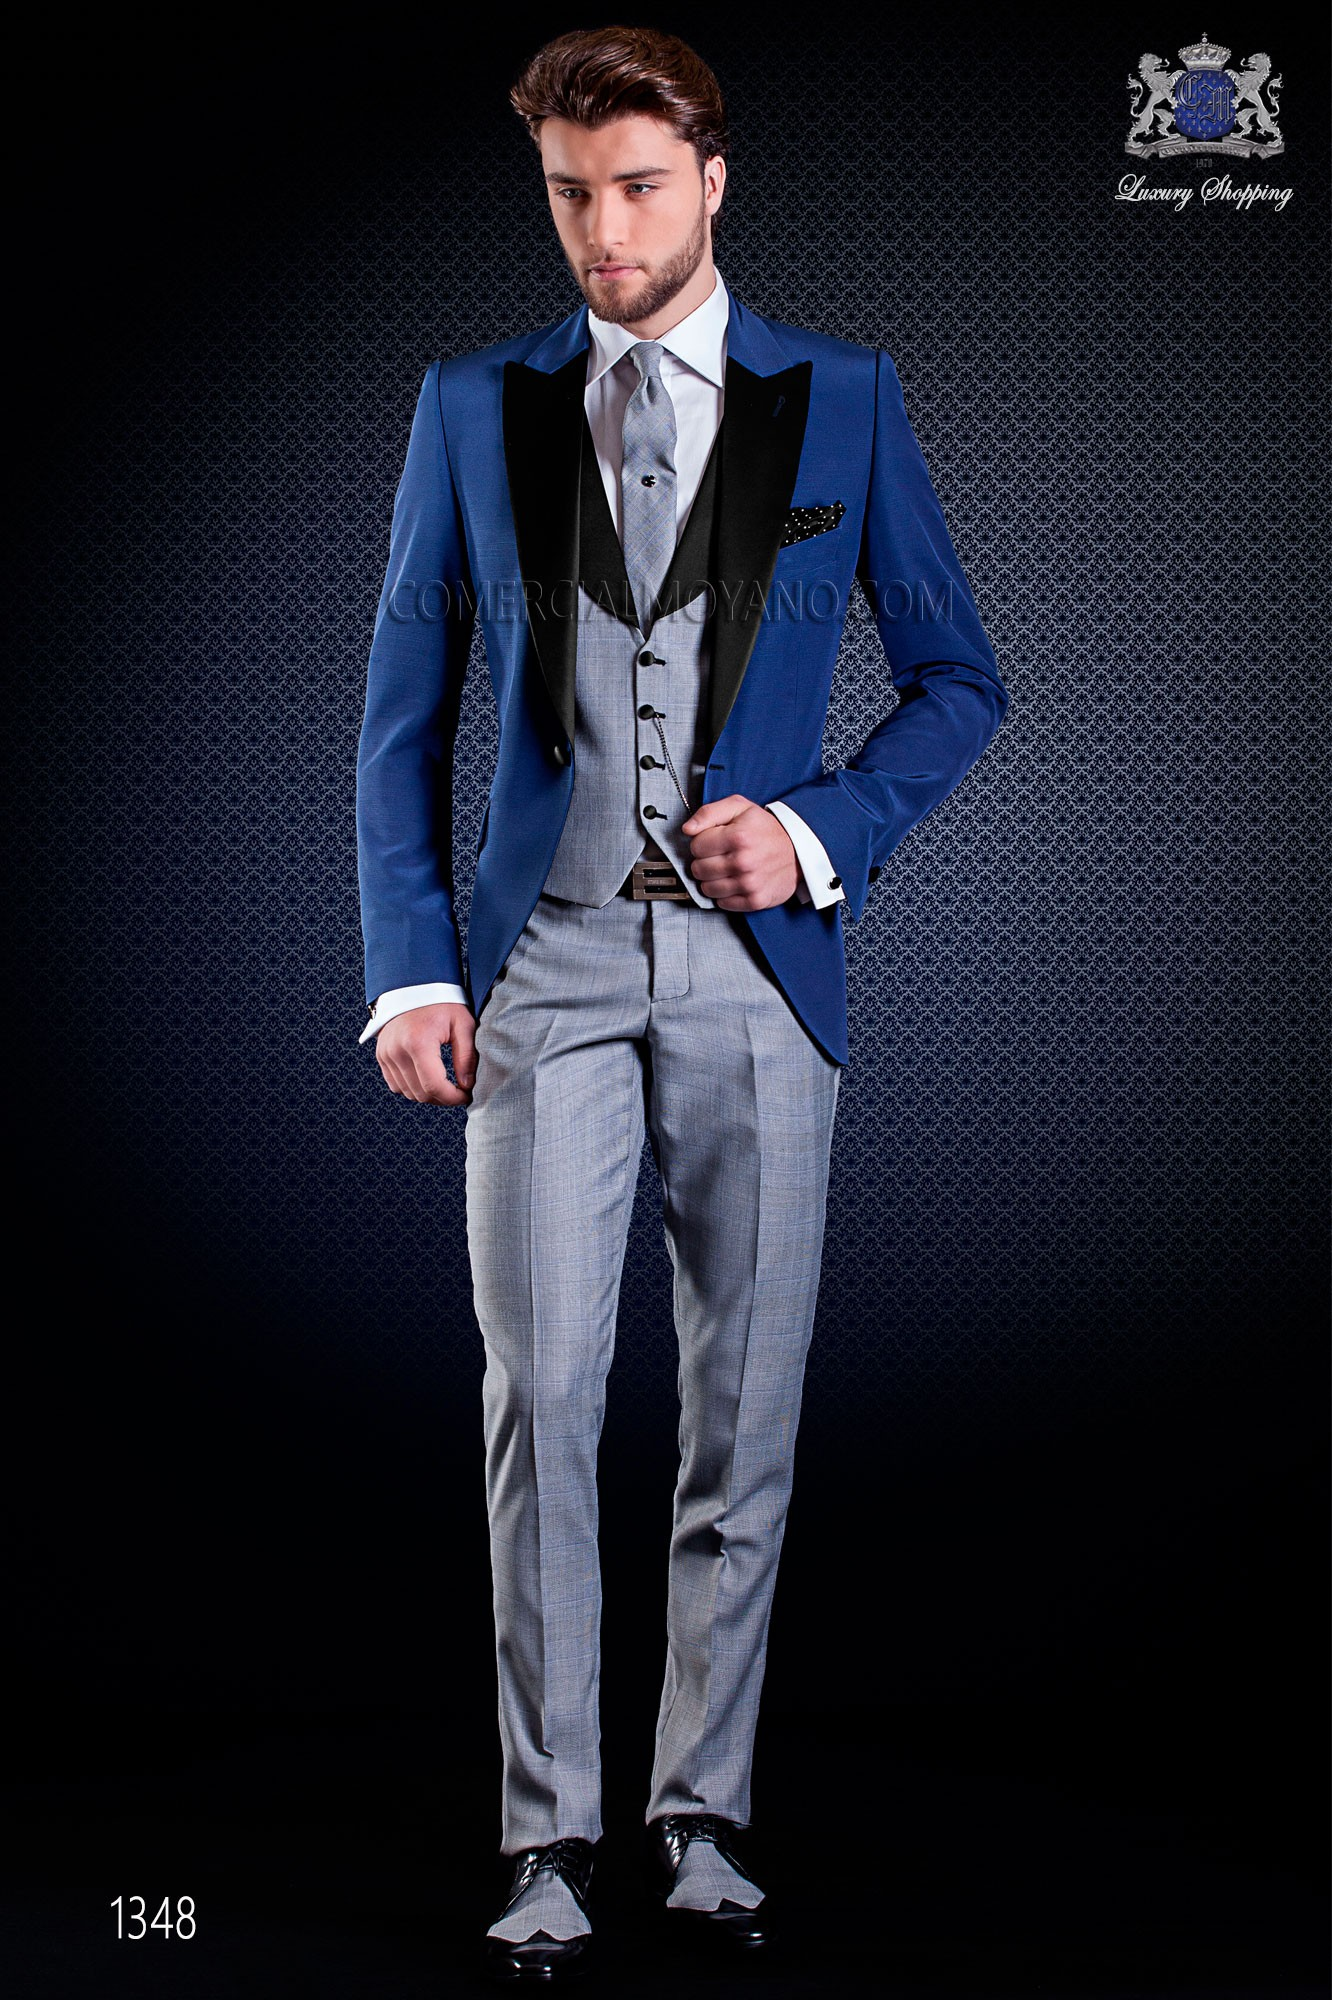 Italian fashion wedding suits in blue, Wales, Ottavio Nuccio Gala